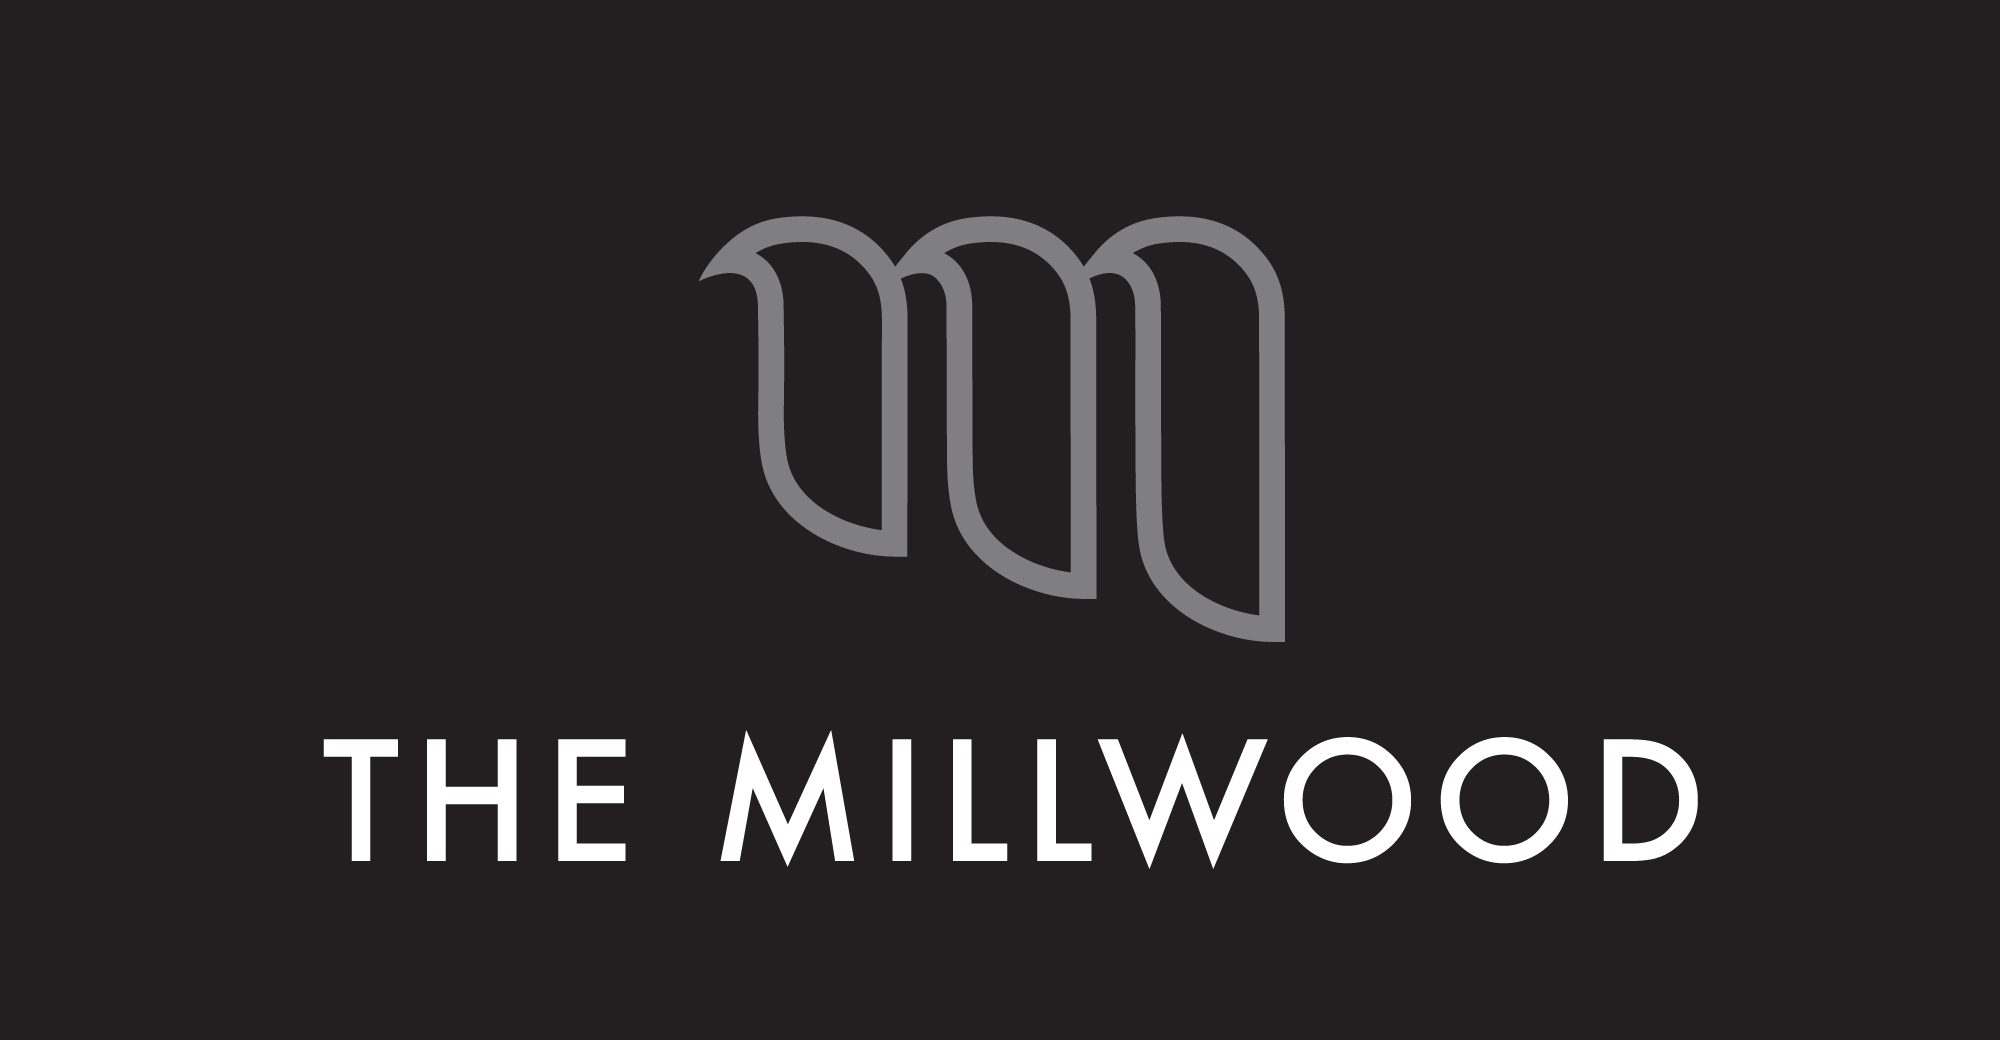 Millwood condos by Times group